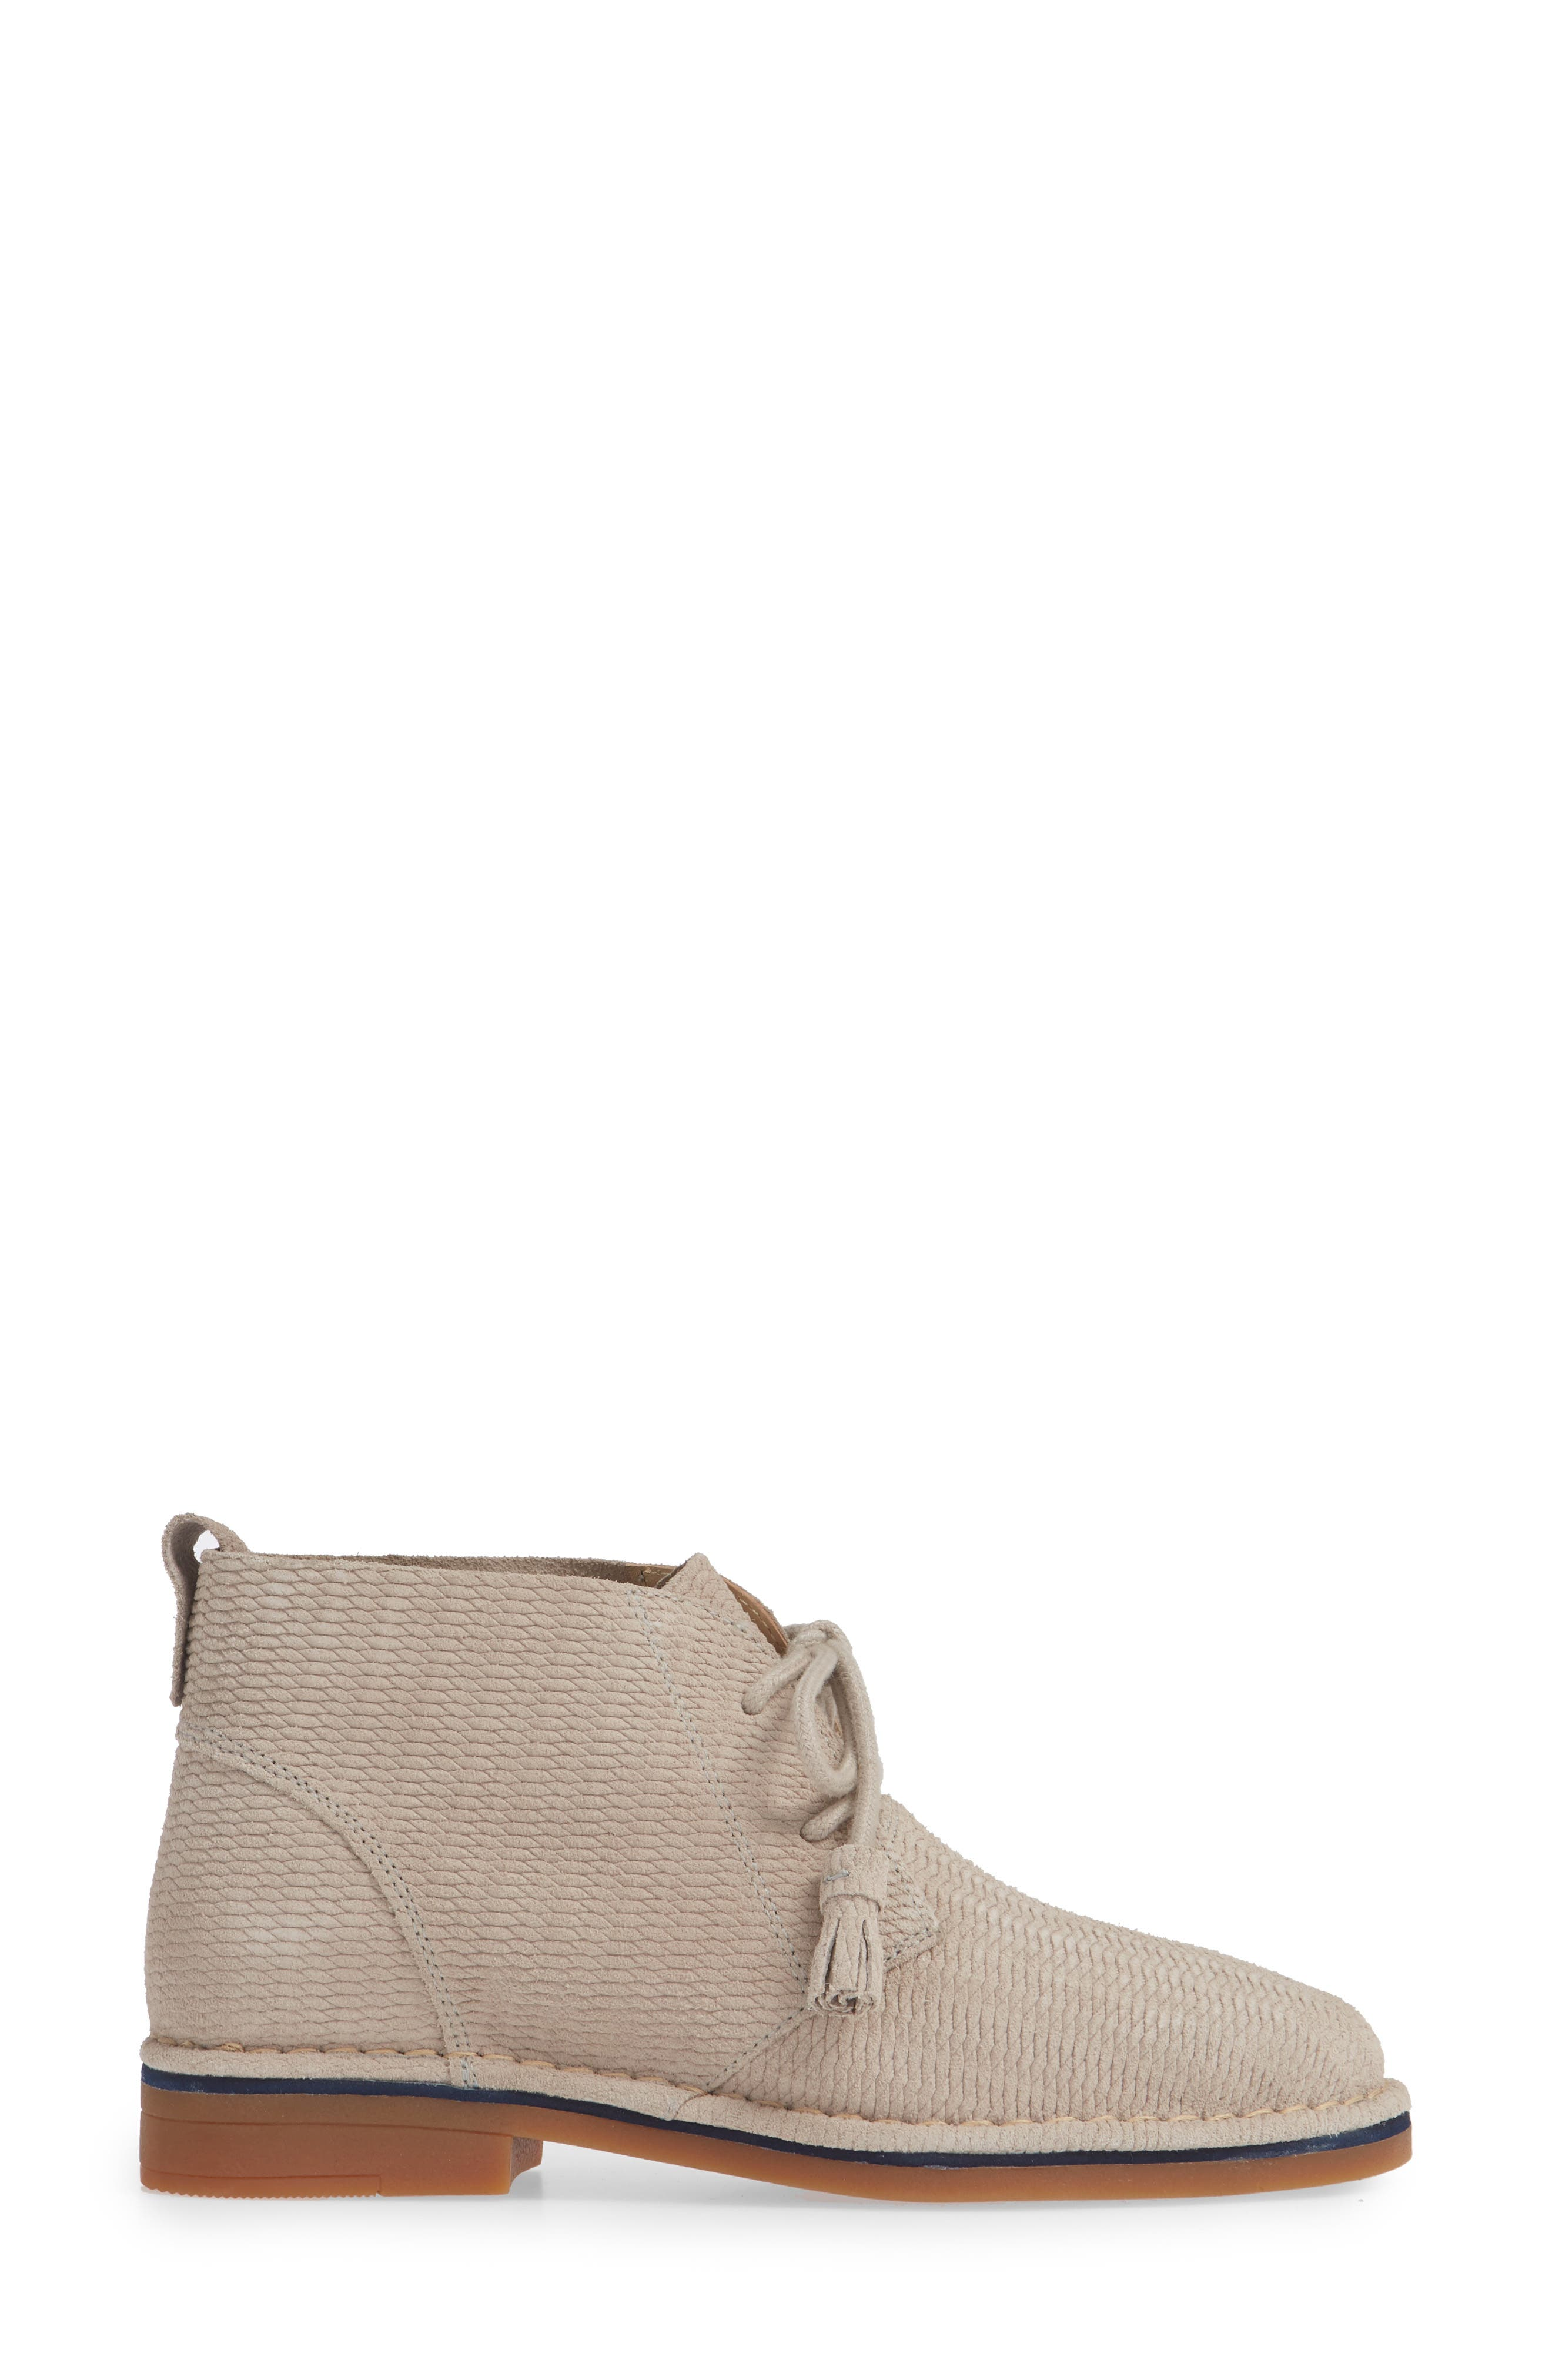 'Cyra Catelyn' Chukka Boot,                             Alternate thumbnail 3, color,                             ICE GREY SUEDE